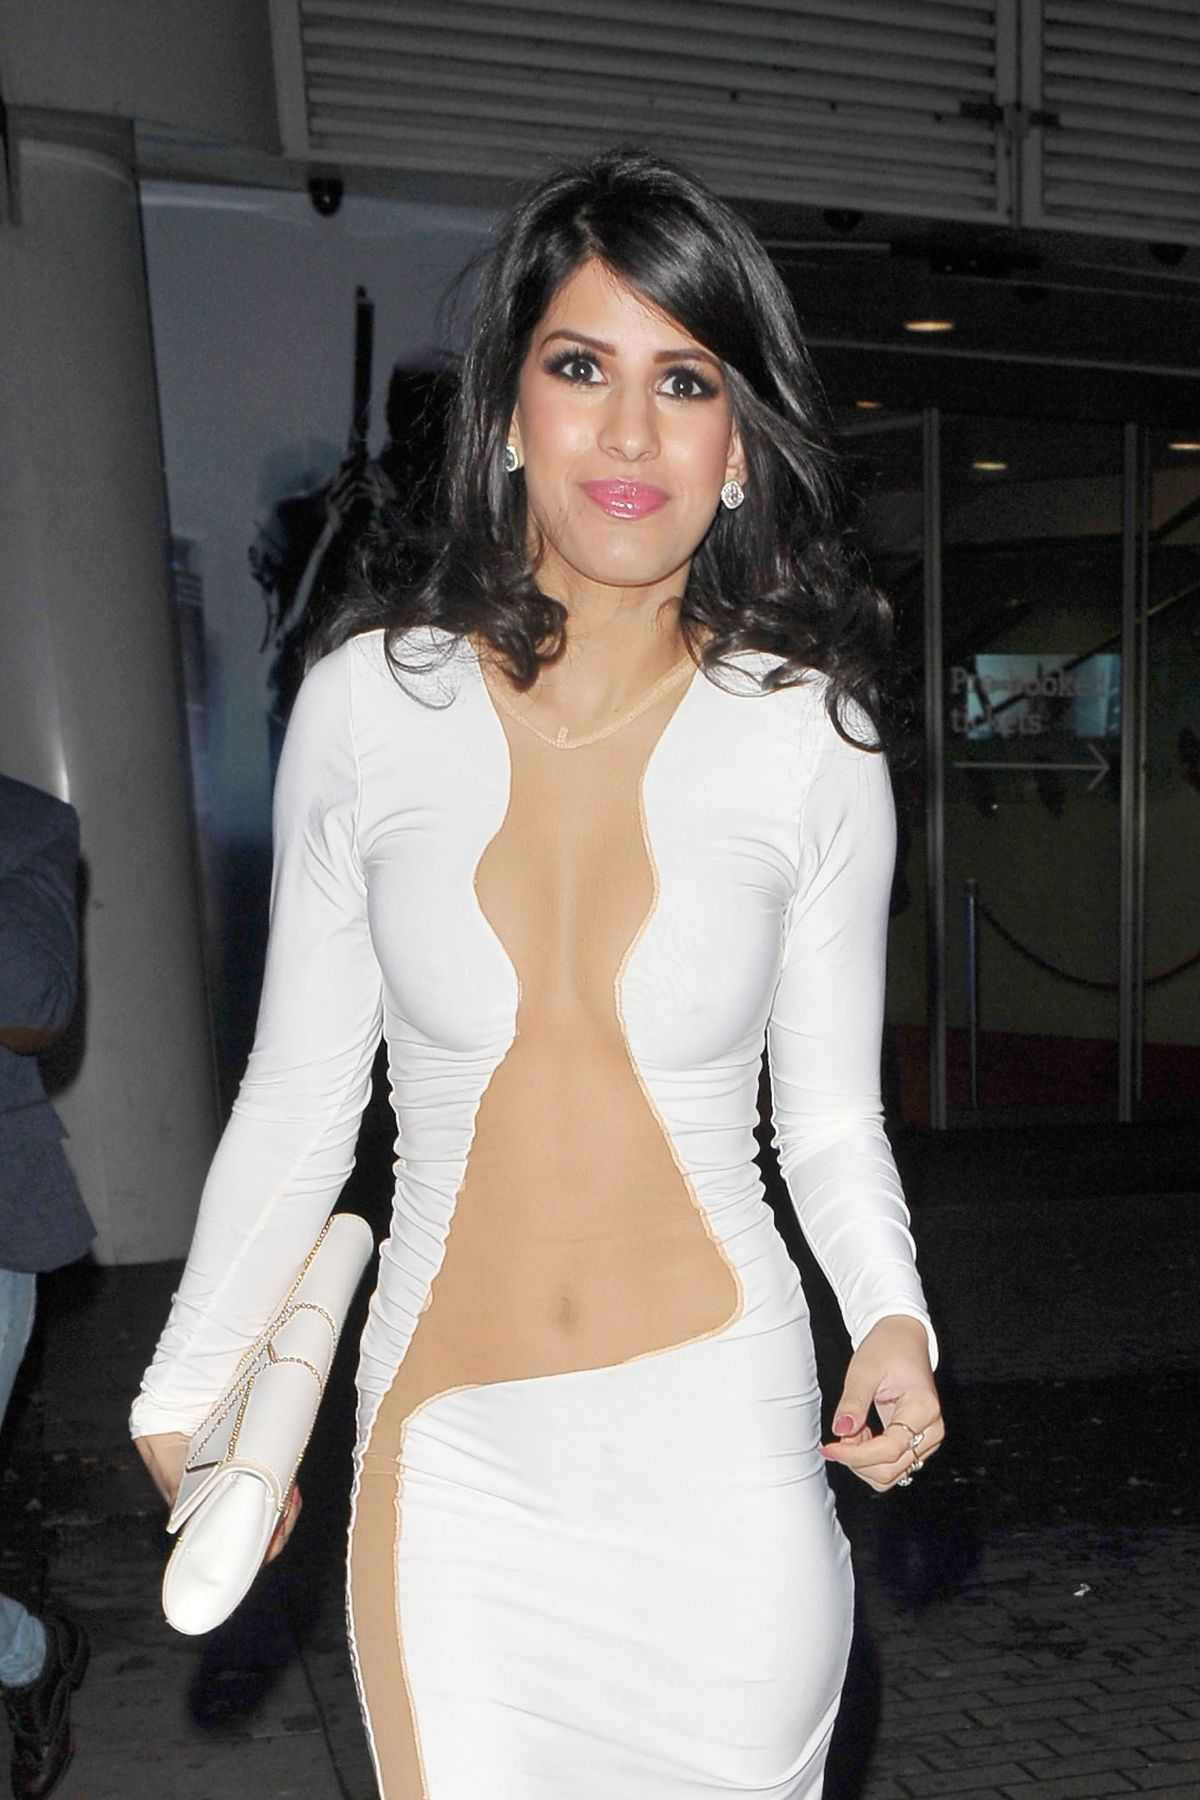 jasmin-walia-at-robocop-premiere-in-london_7.jpg - 222.74 KB